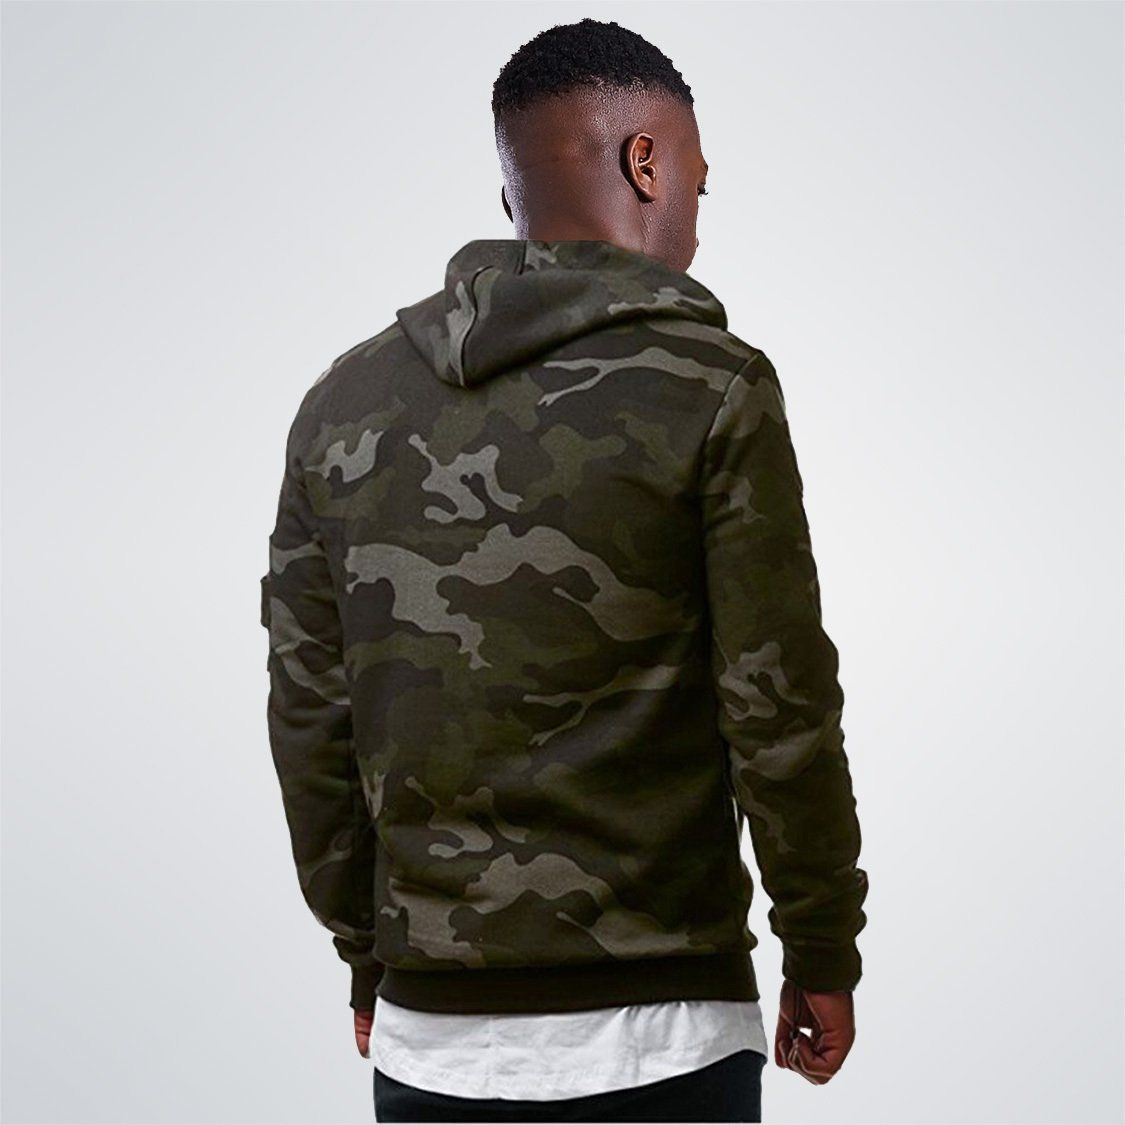 Military Camouflage Sleeve pocket Zipper Hooded Sweatshirts